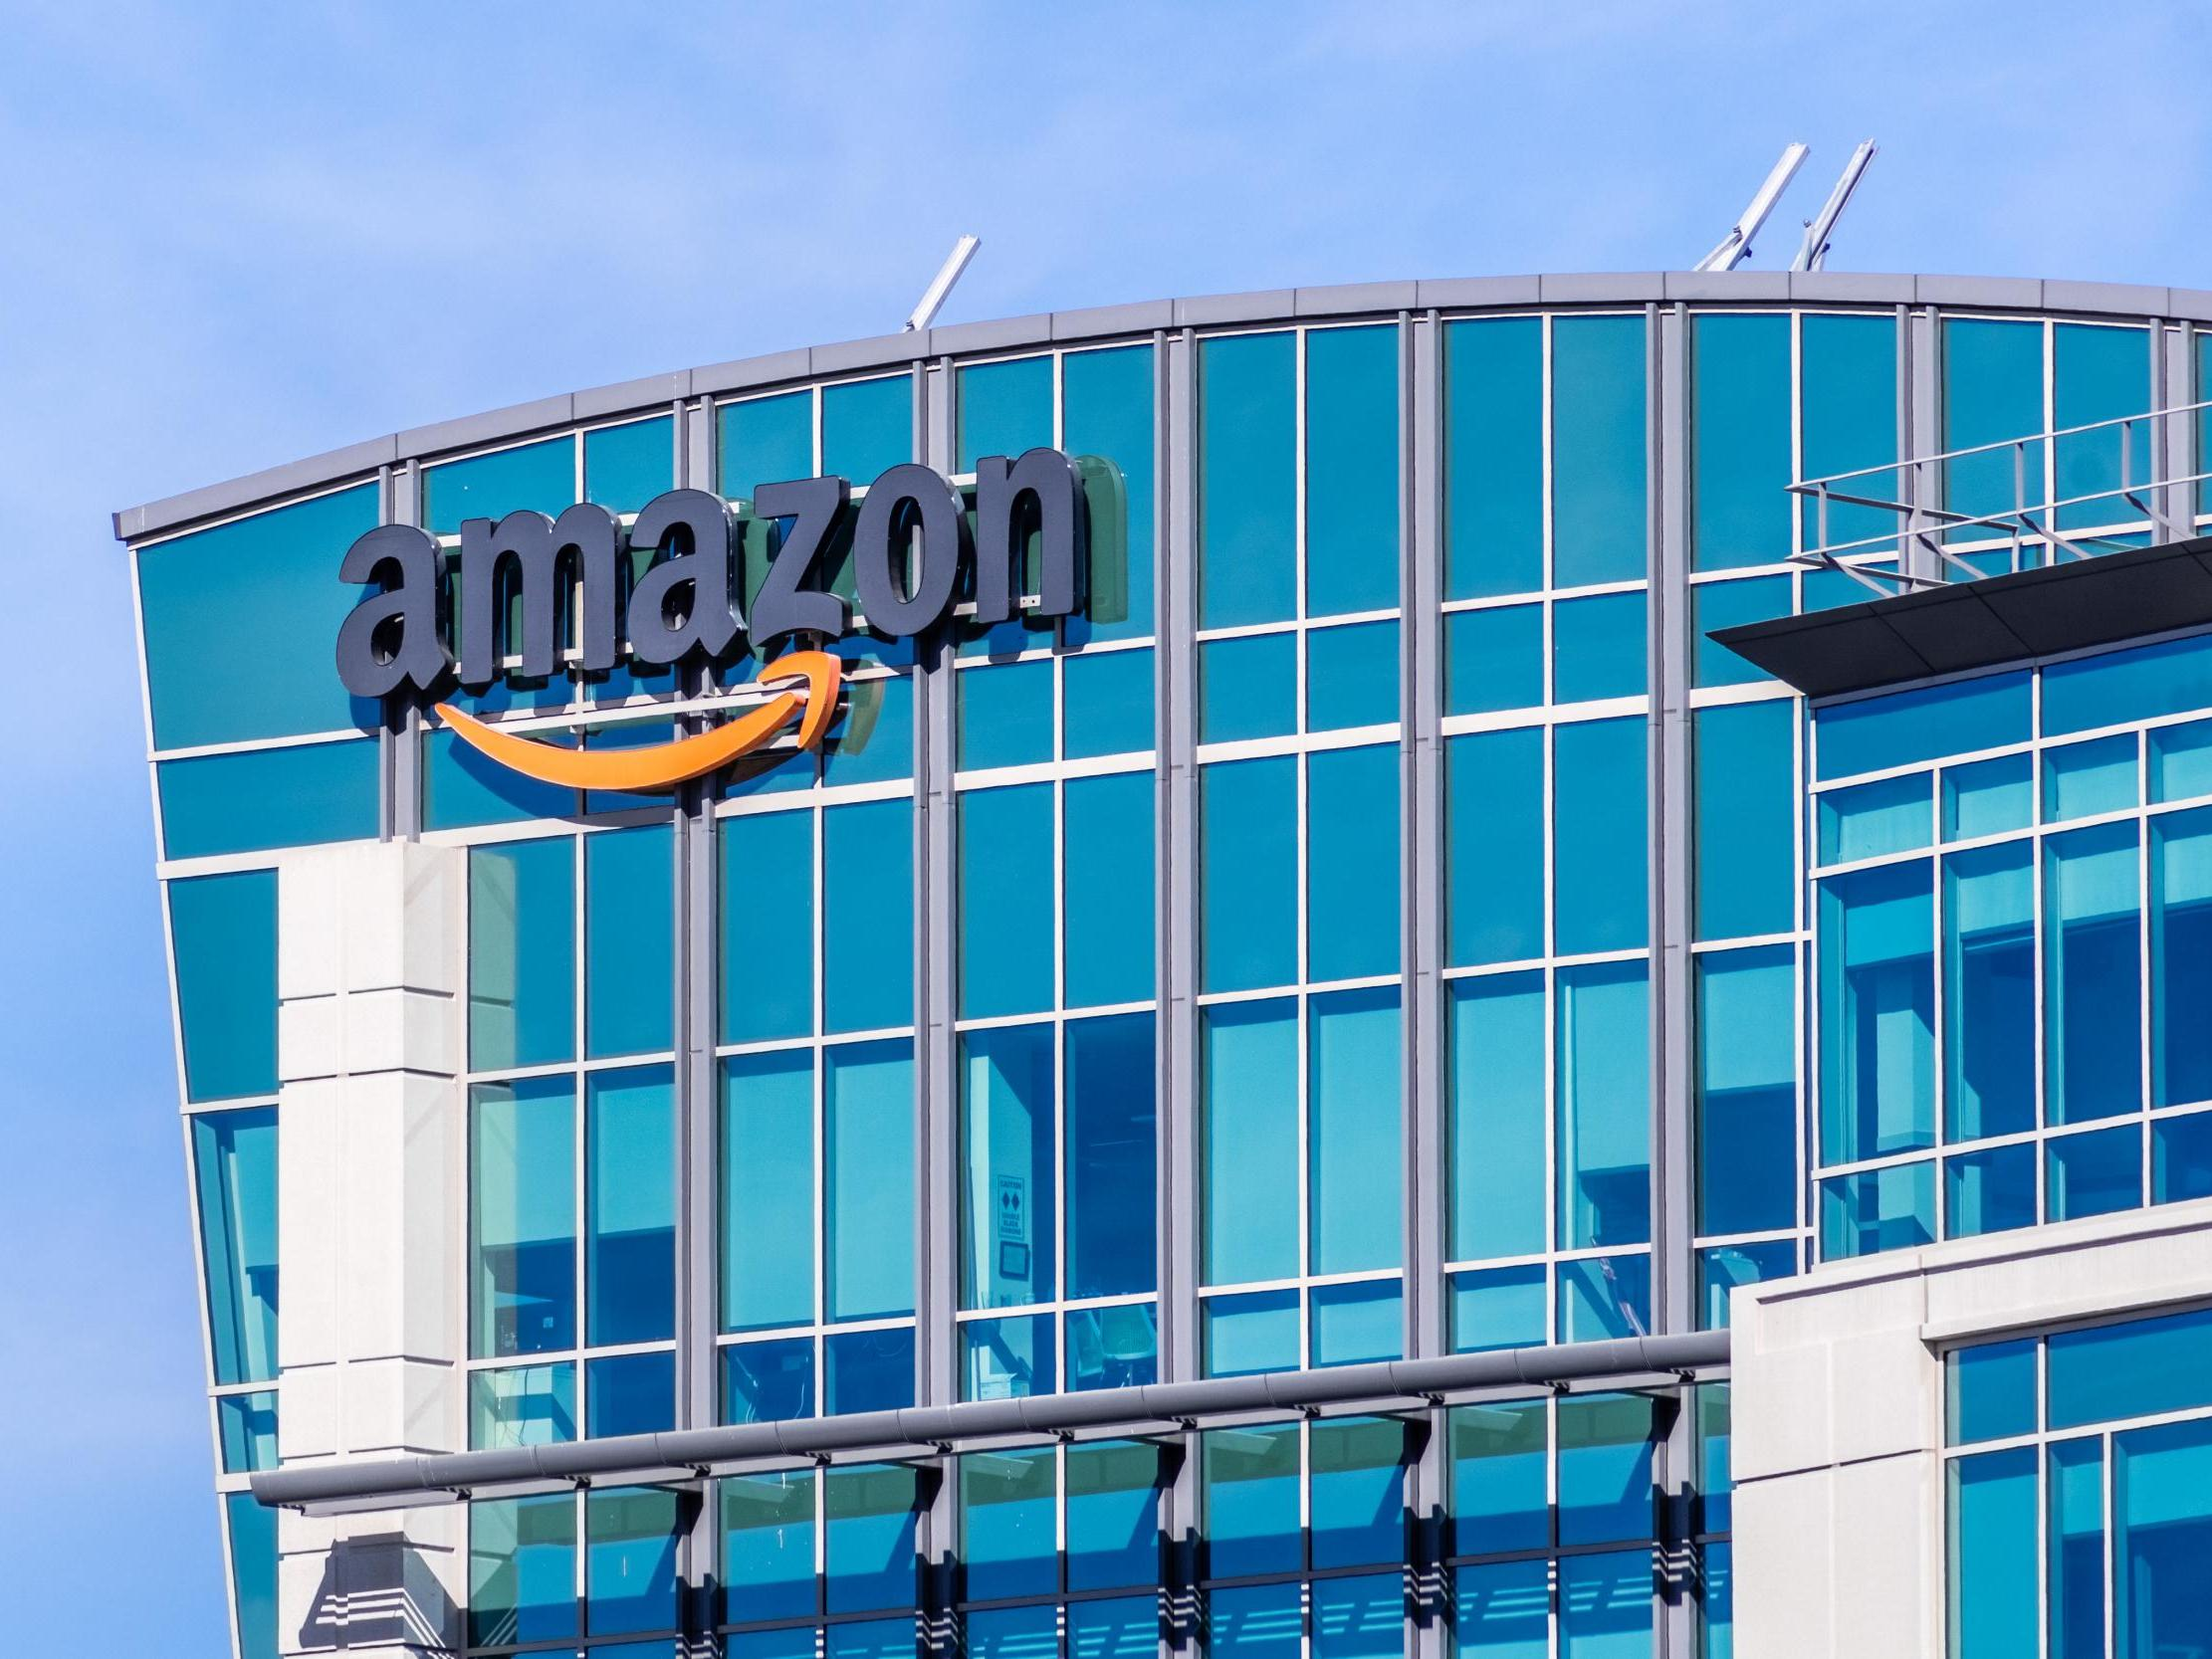 Conservative government giving NHS data to Amazon for free, documents reveal